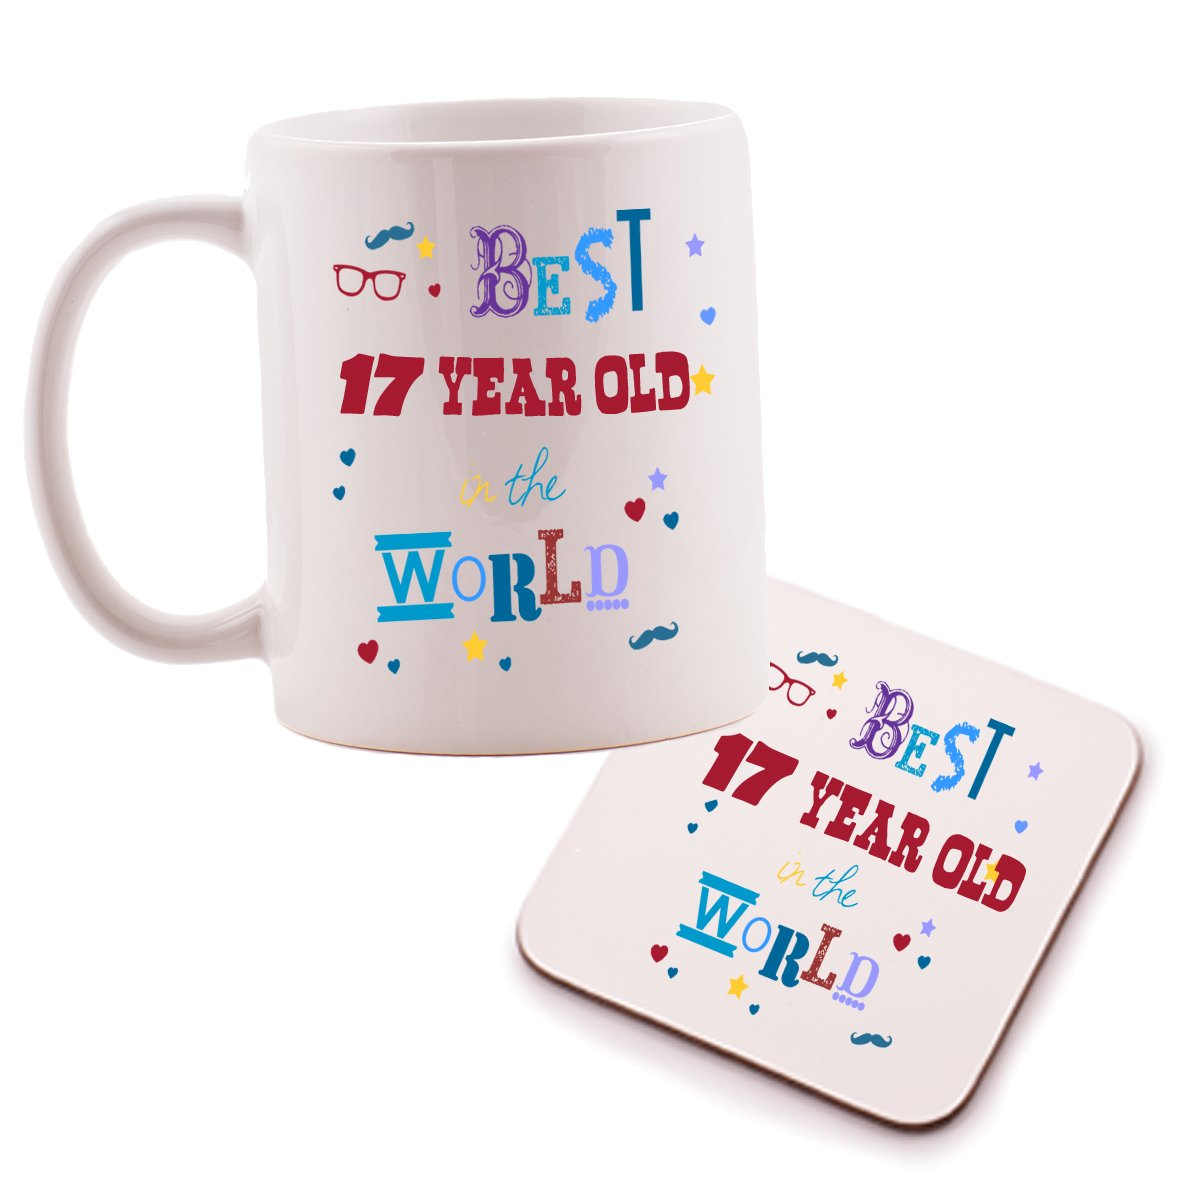 Best 17 Year Old Mug and Coaster set - birthday gift idea. Perfect present for him, her, son or daughter Ukgiftbox